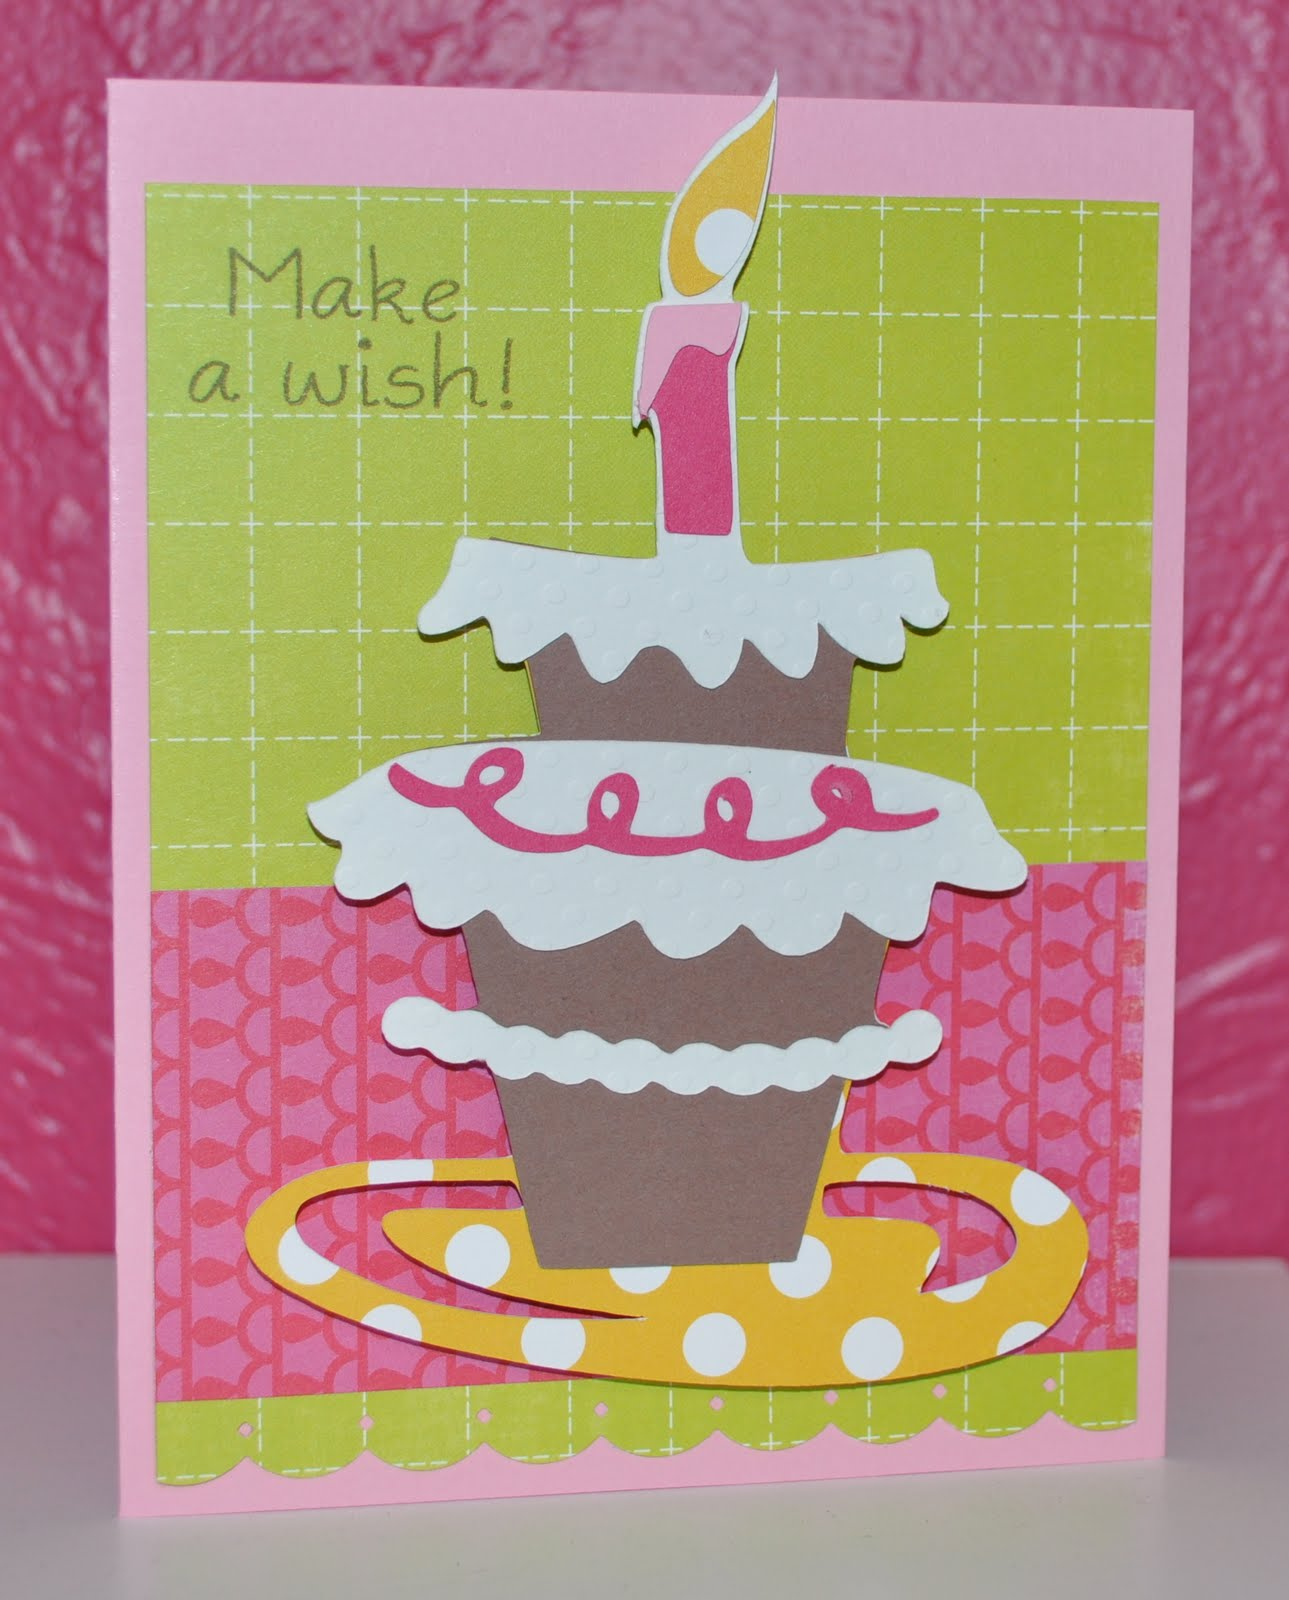 Will win birthday crazy my pink stamper stamps good luck everyone